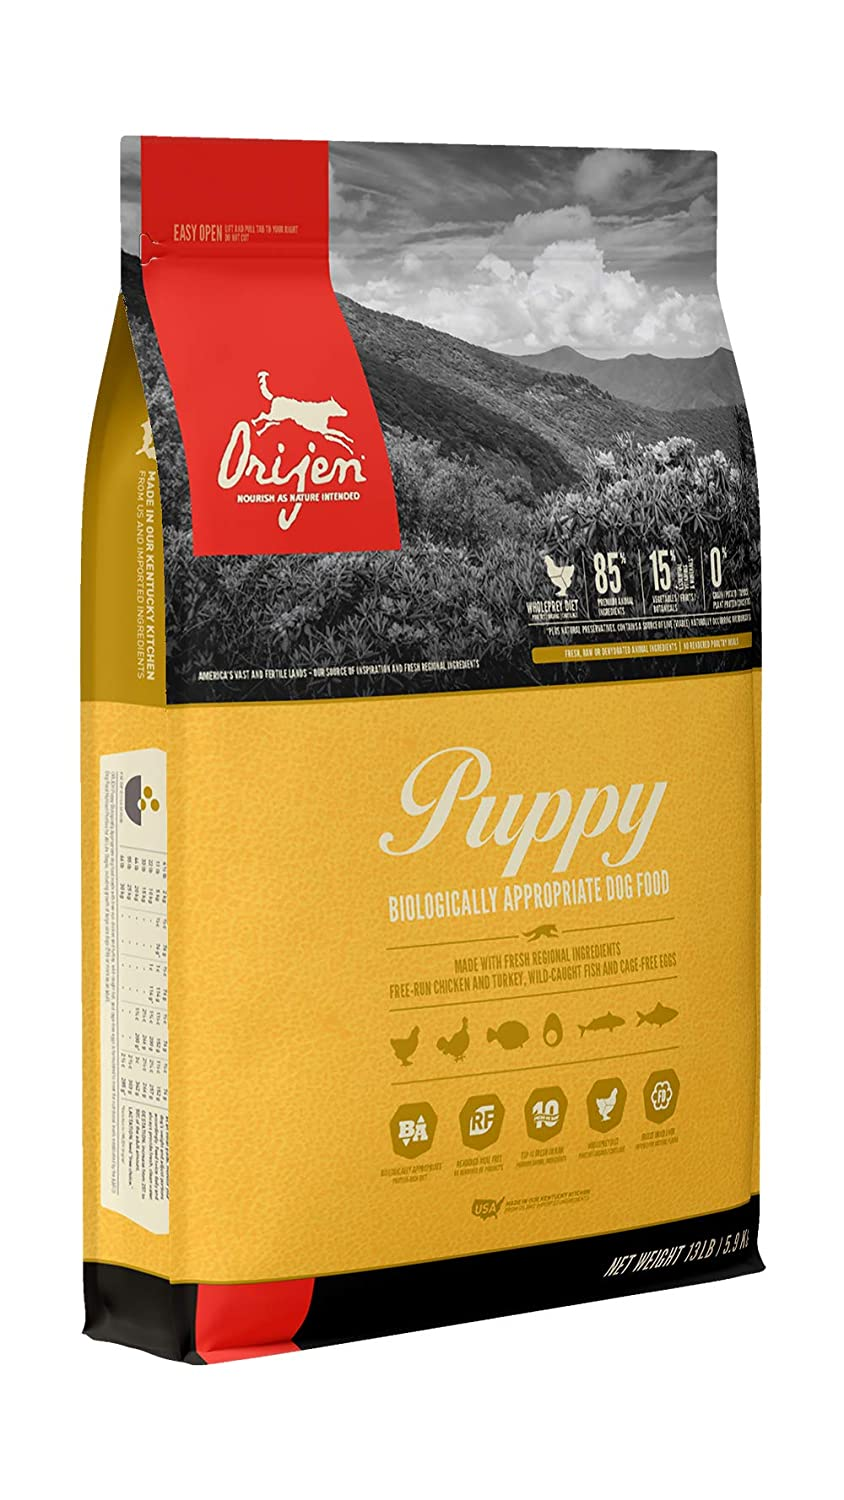 1.Orijen Puppy High-Protein Grain-Free Premium Quality Dry Dog Food